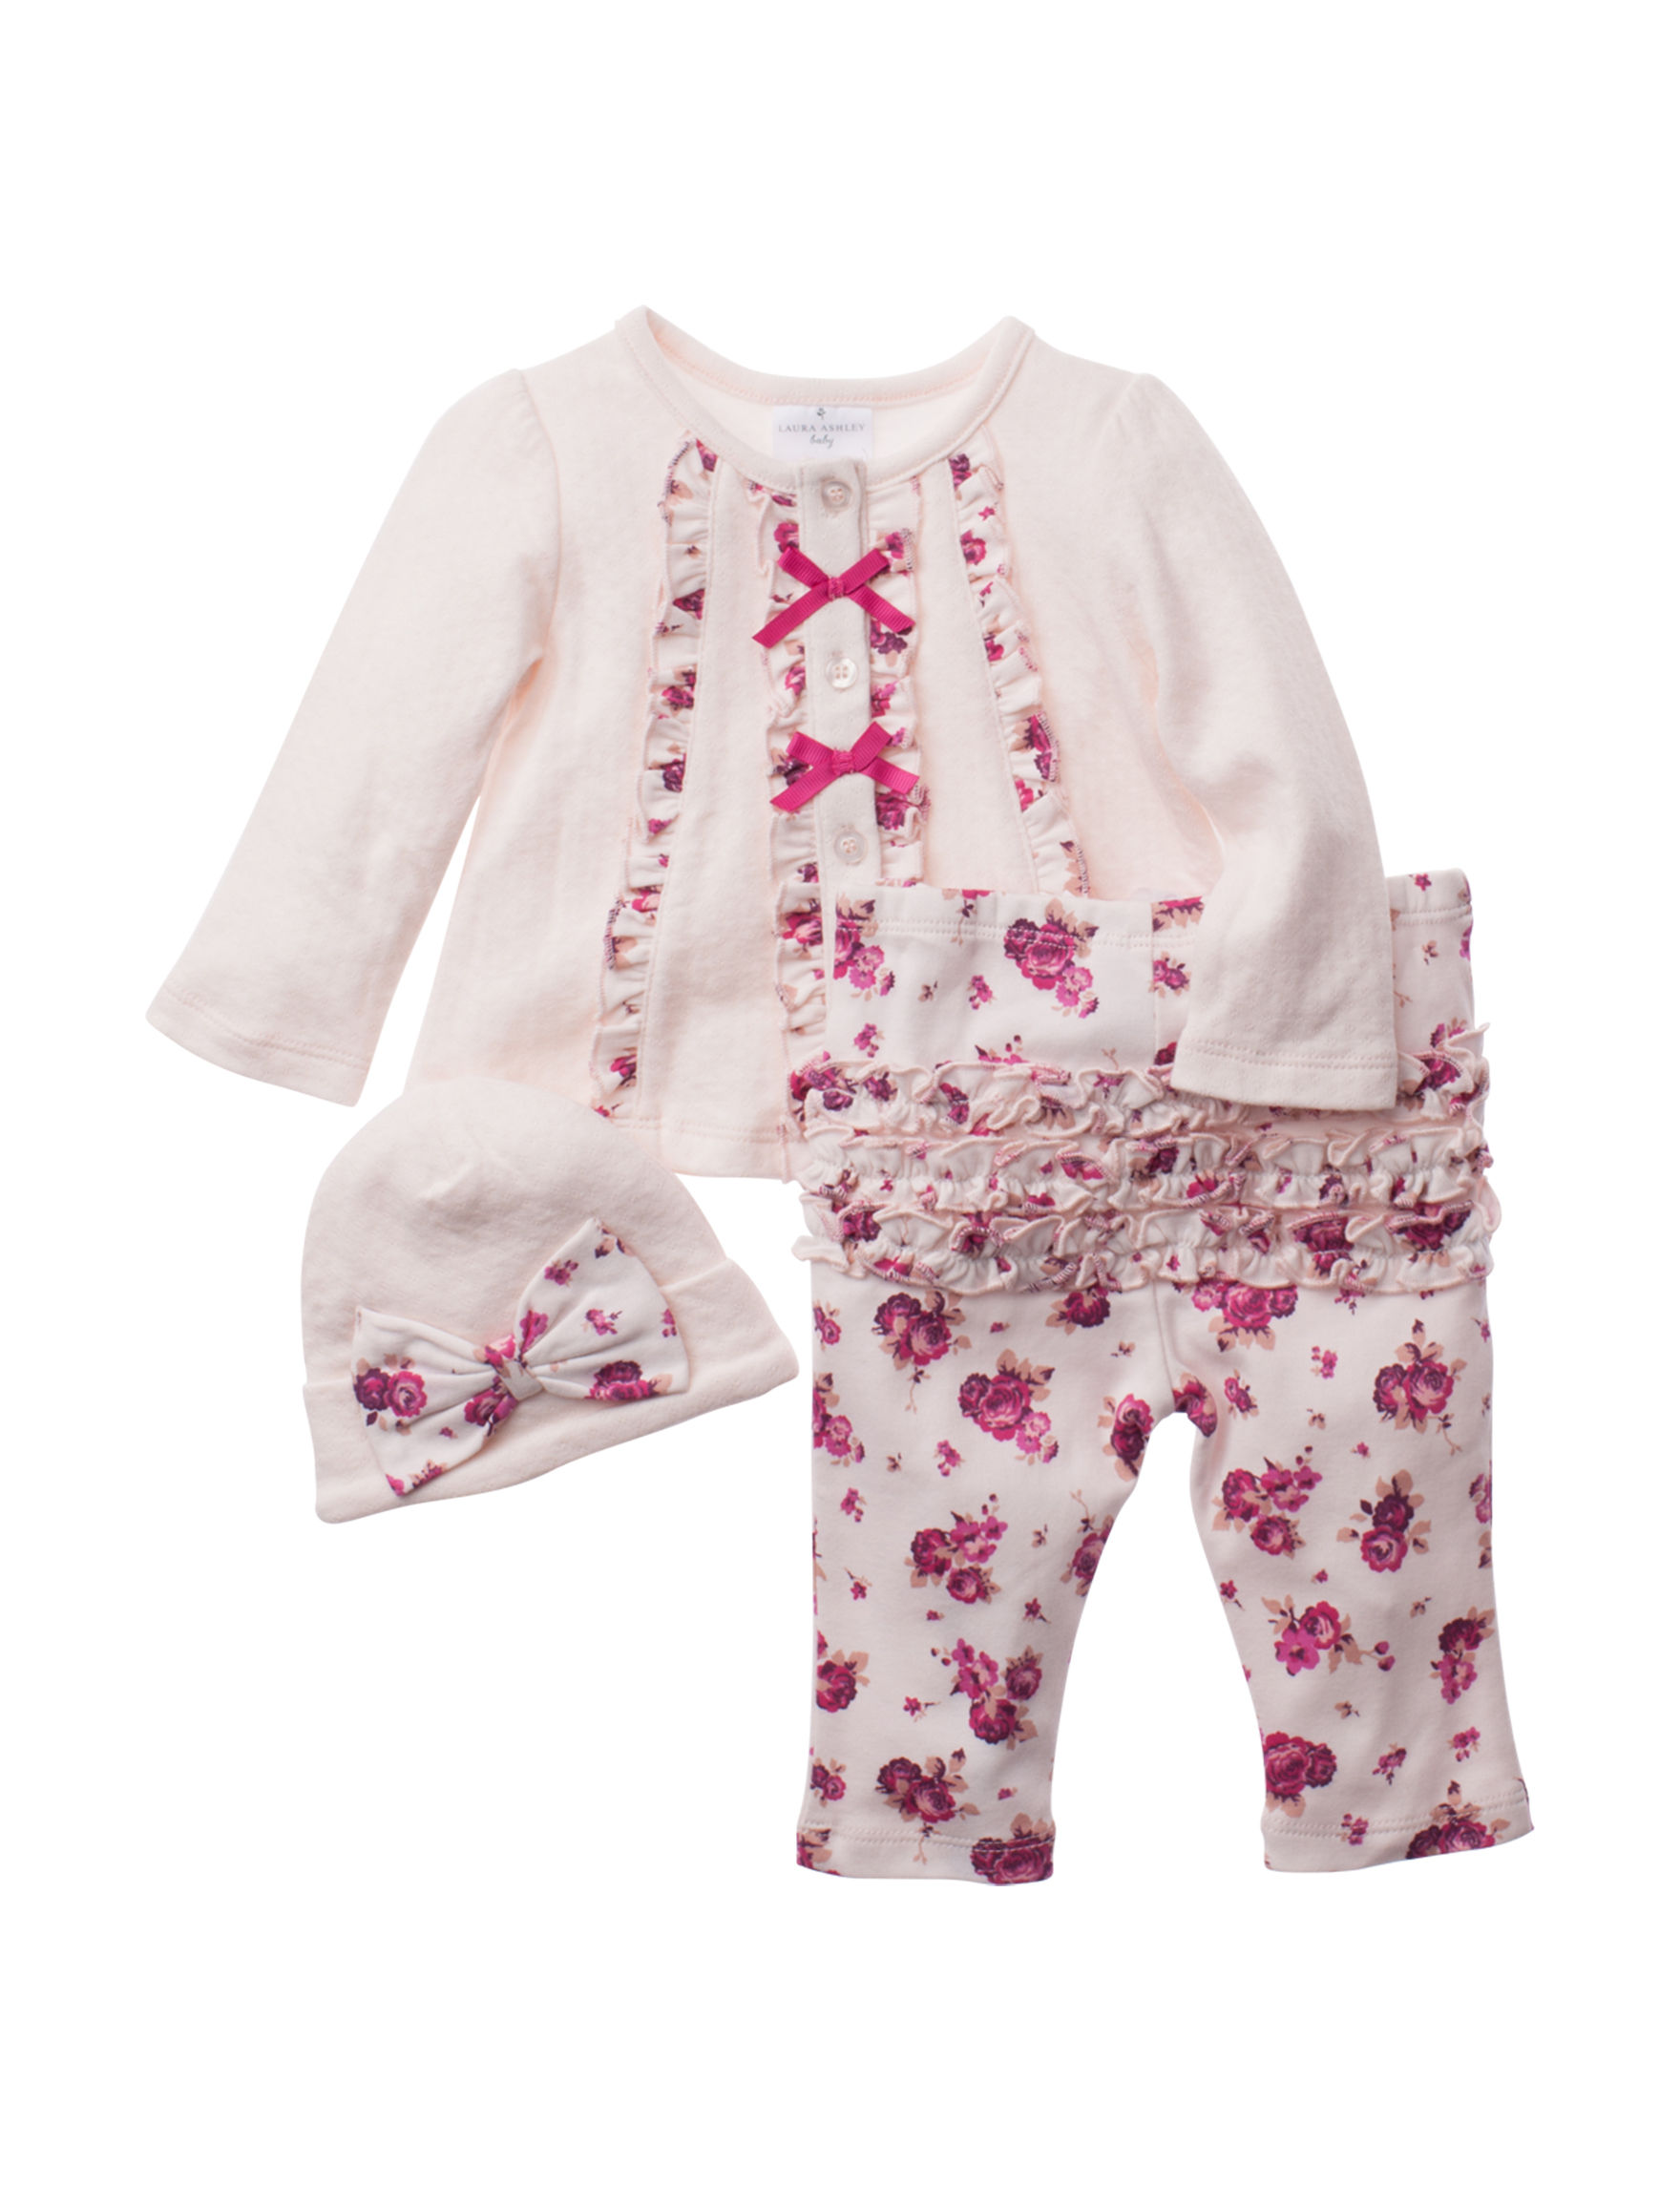 Laura Ashley Pink Floral